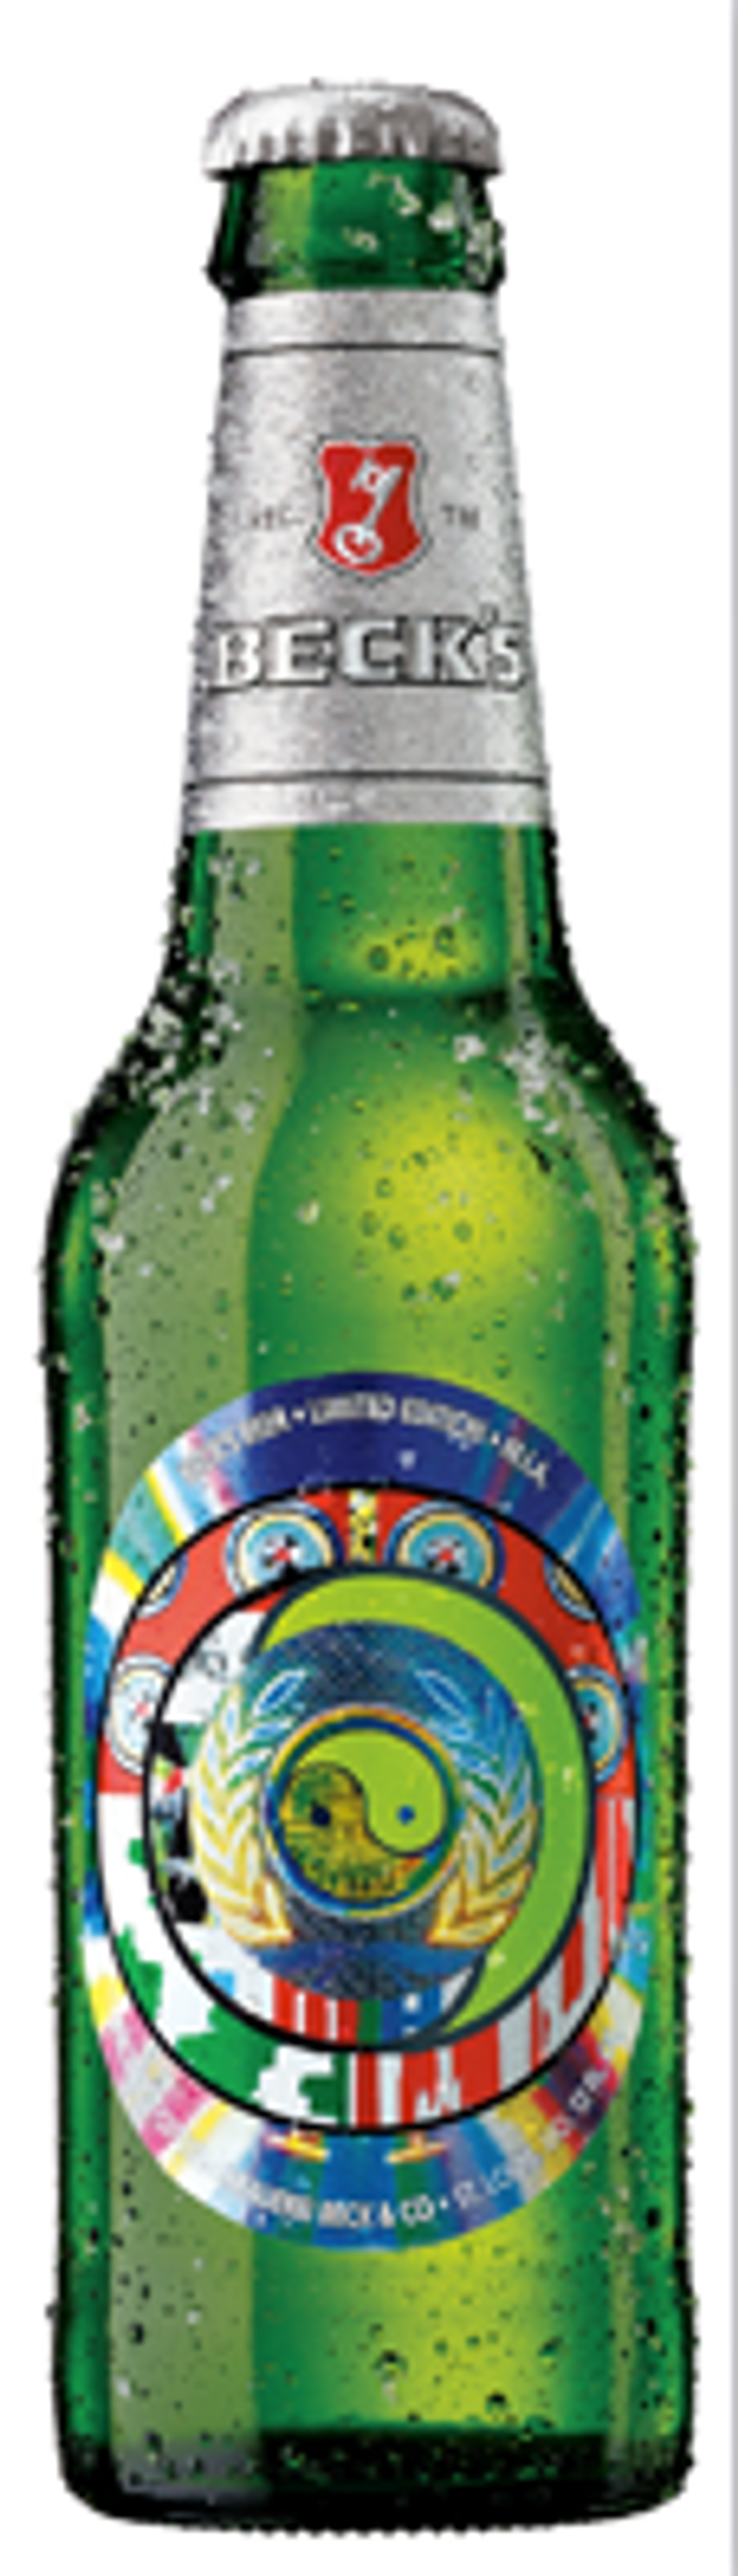 M.I.A. Is Apparently Designing Labels For Beck's Beer Now